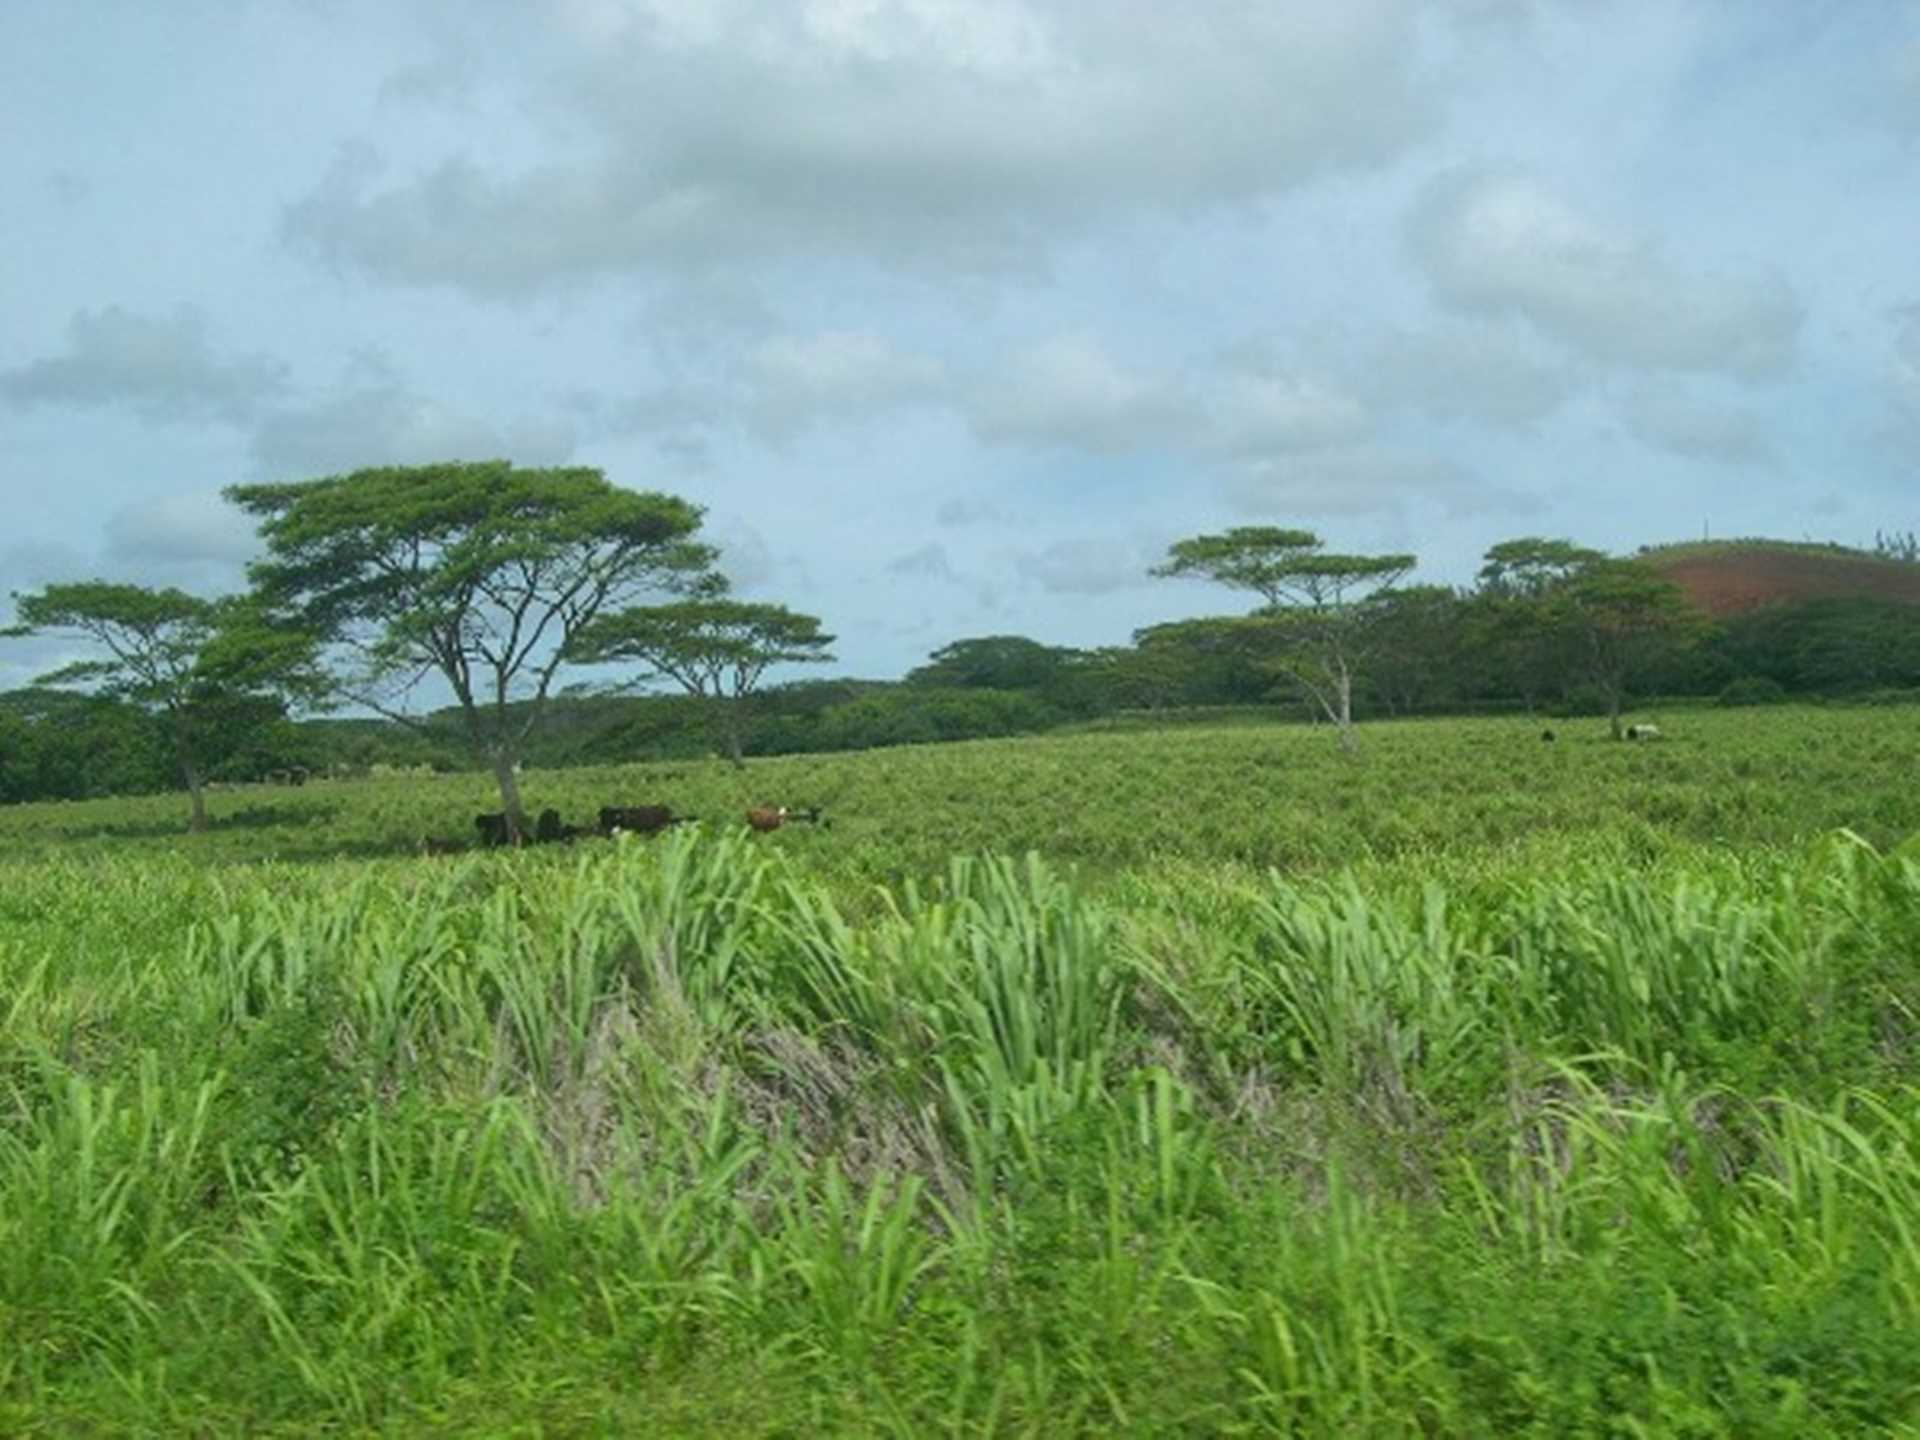 The Garden Isle has lots of open rural areas